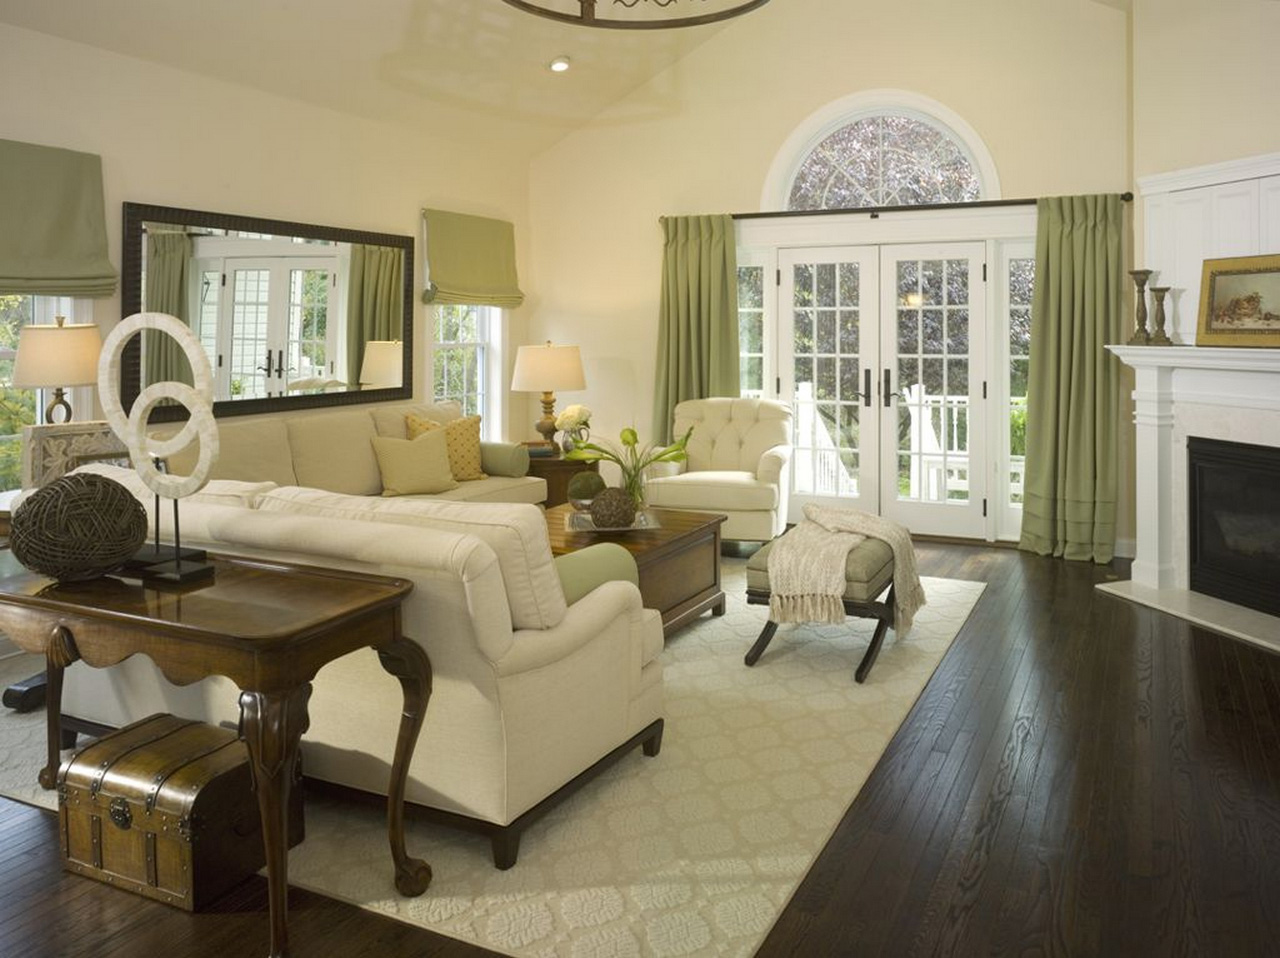 family room ideas-Spacious-family-room-design-using-white-sofa-and-green-window-curtain-also-classic-behind-sofa-table